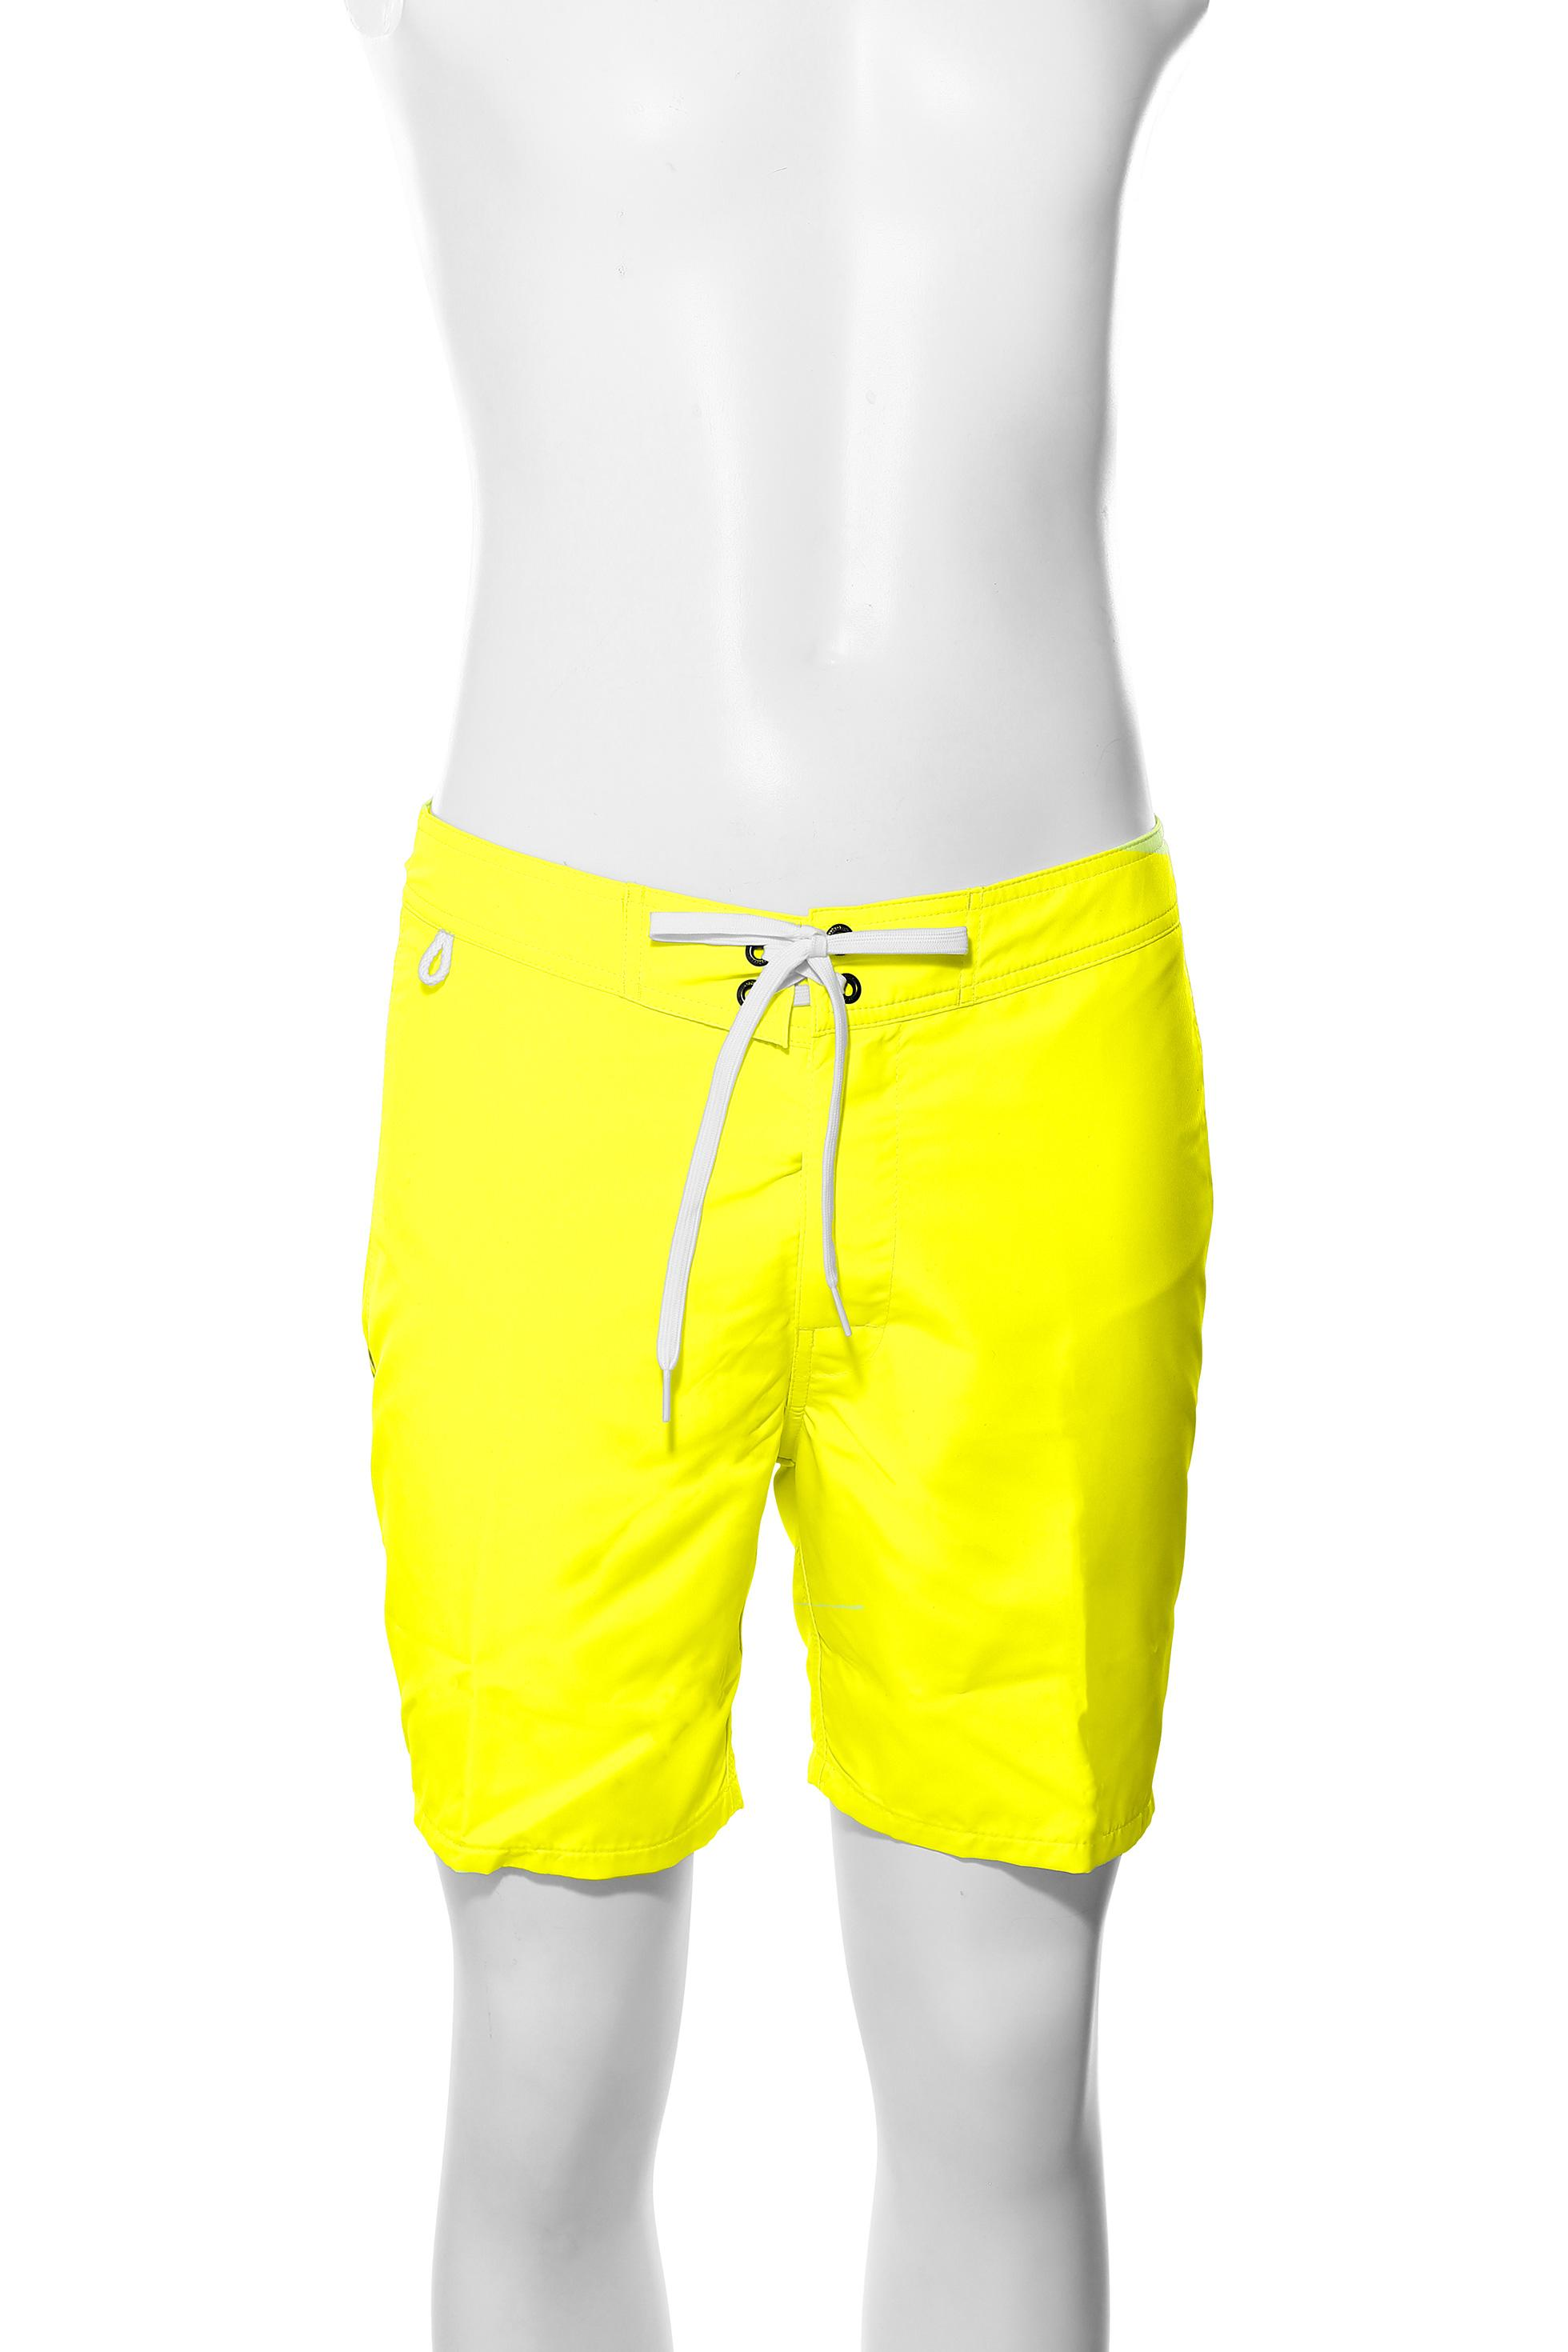 d663467a35 Accueil · Homme · Maillot de bain · Short; 503M WOW Jaune Fluo. Loading  Zoom, please wait. Loading Zoom, please wait